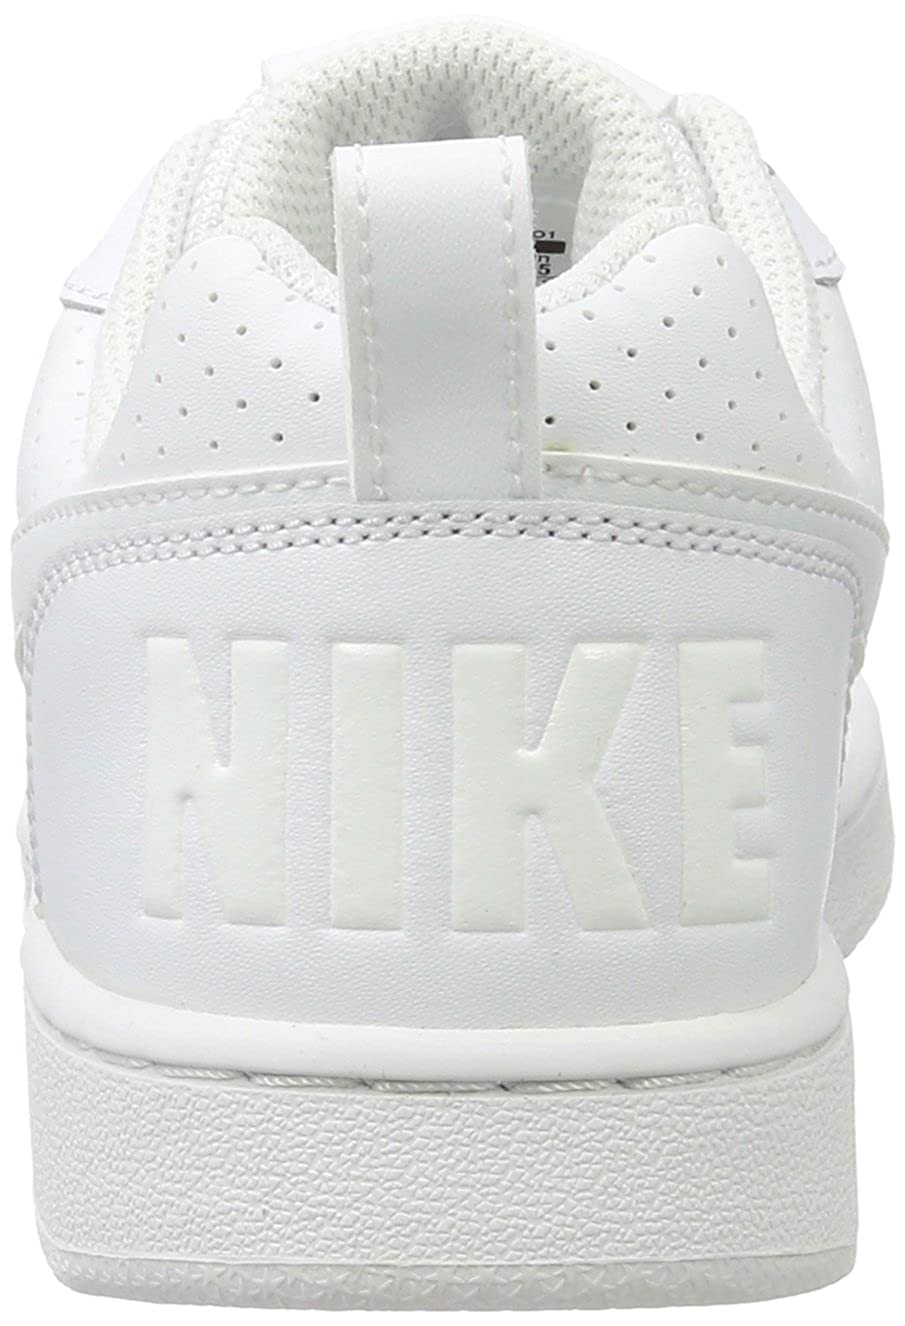 info for 37d58 0abd8 Nike Court Borough Low, Chaussures de Sport - Basketball Femme: Amazon.fr:  Chaussures et Sacs